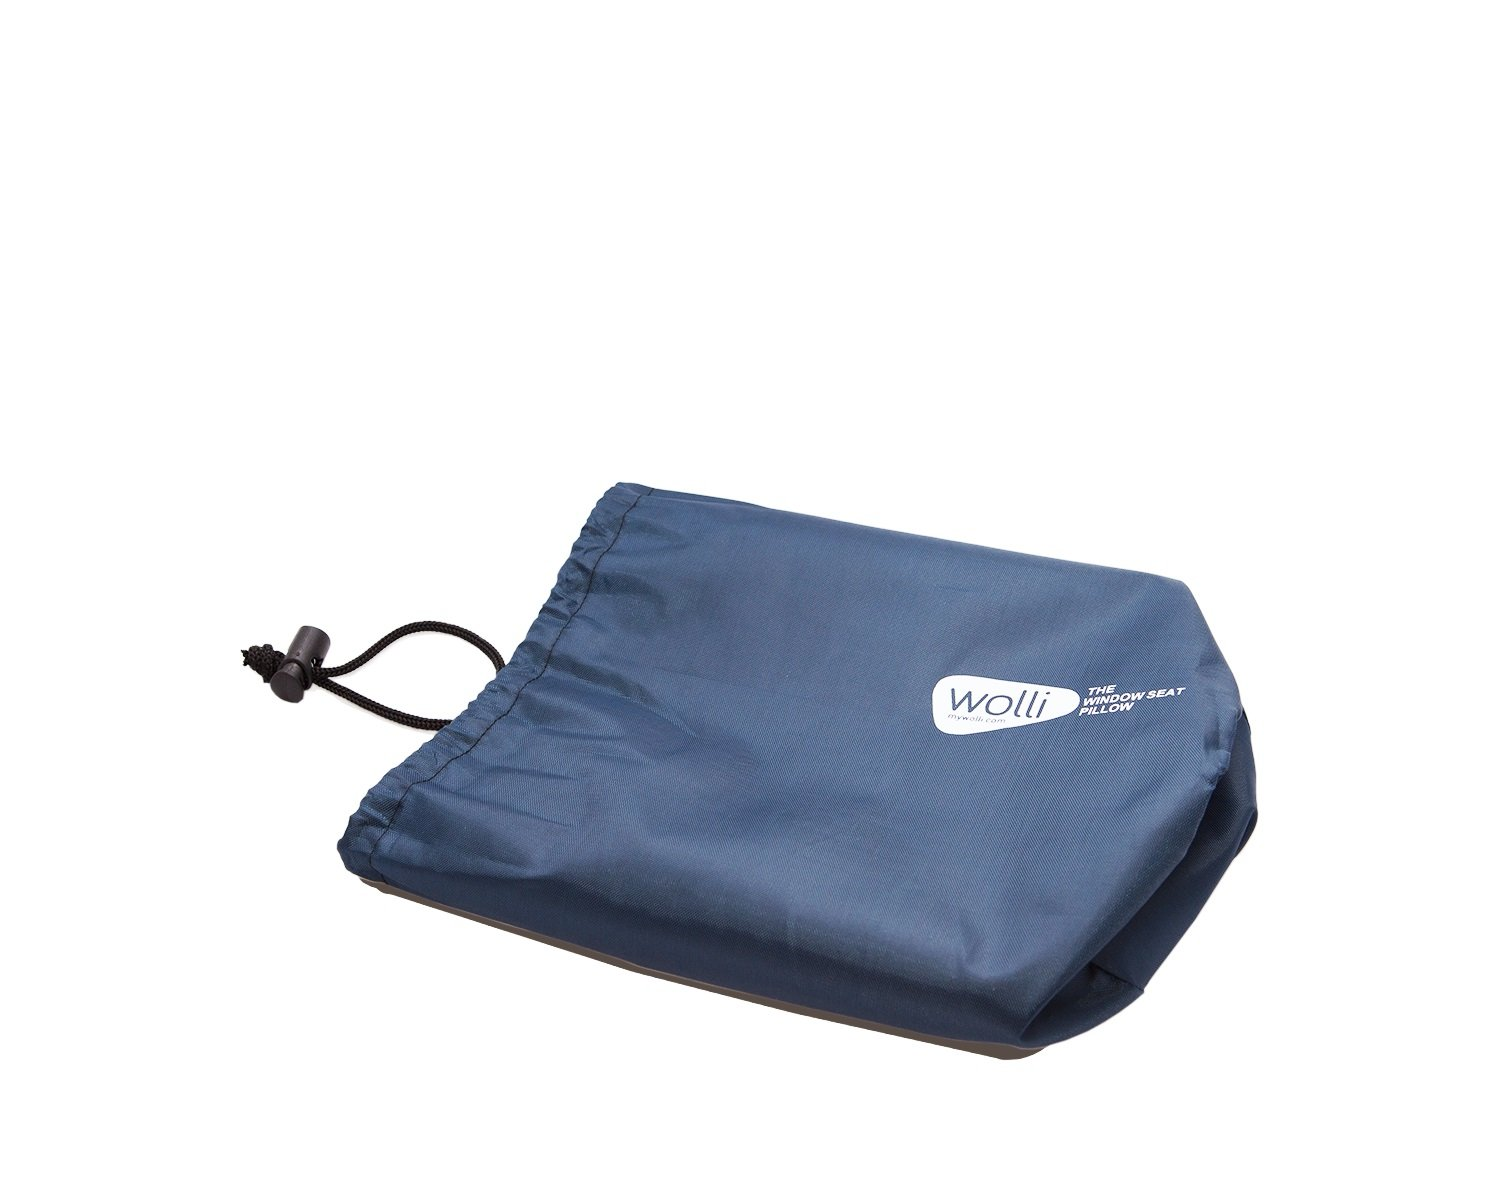 Wolli- The Window Seat Headrest Pillow - Perfect for Car, Train, and Airplane Travel (Blue)